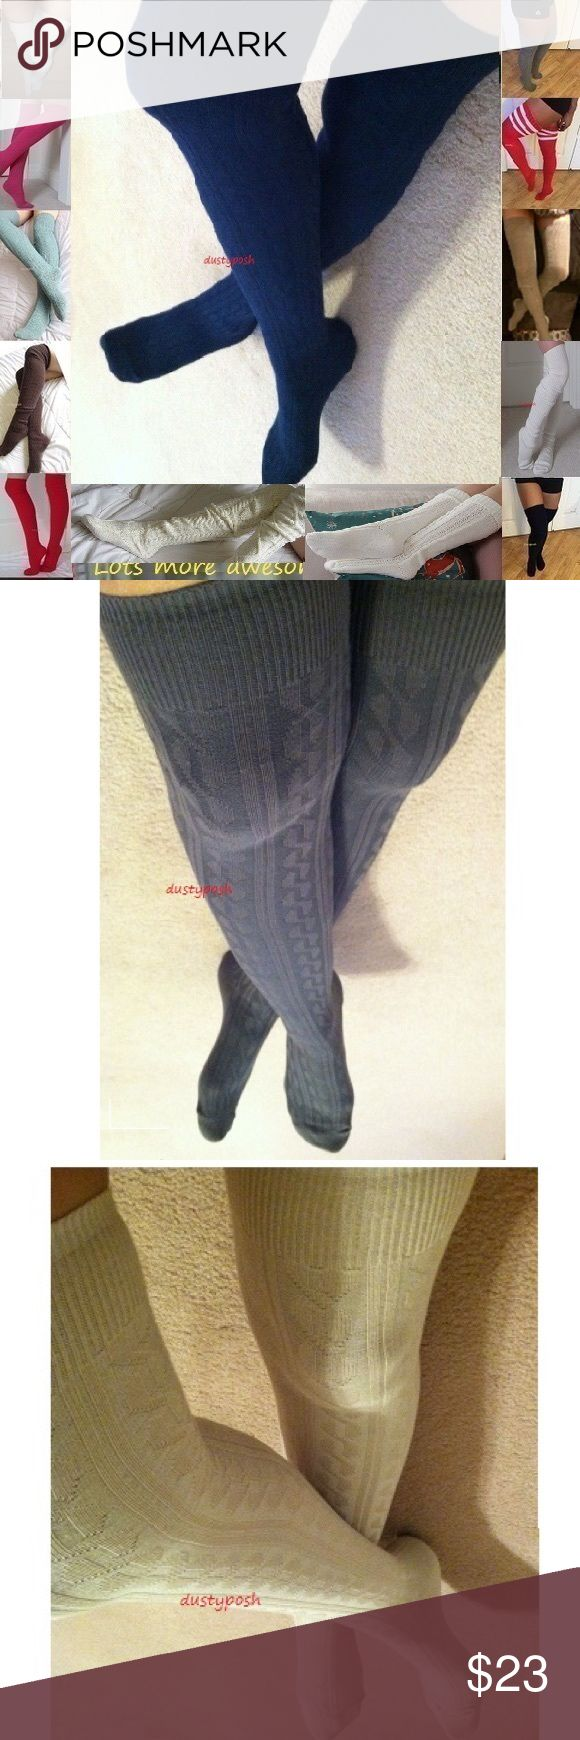 """Cable Knit Thigh High Over The Knee Socks Boot OTK Long cable knit thigh high socks. Soft, cute and versatile, can be worn over the knee or scrunched down. Approximately 22"""" from heel to top, 7"""" from heel to toe. These light weight socks look great cuffed and are still long enough to be worn comfortably over the knee. This listing is for one pair, choose from antique white, beige, navy blue or black. Not HUE brand, just had to pick a brand for listing purposes. if you're interested in other…"""